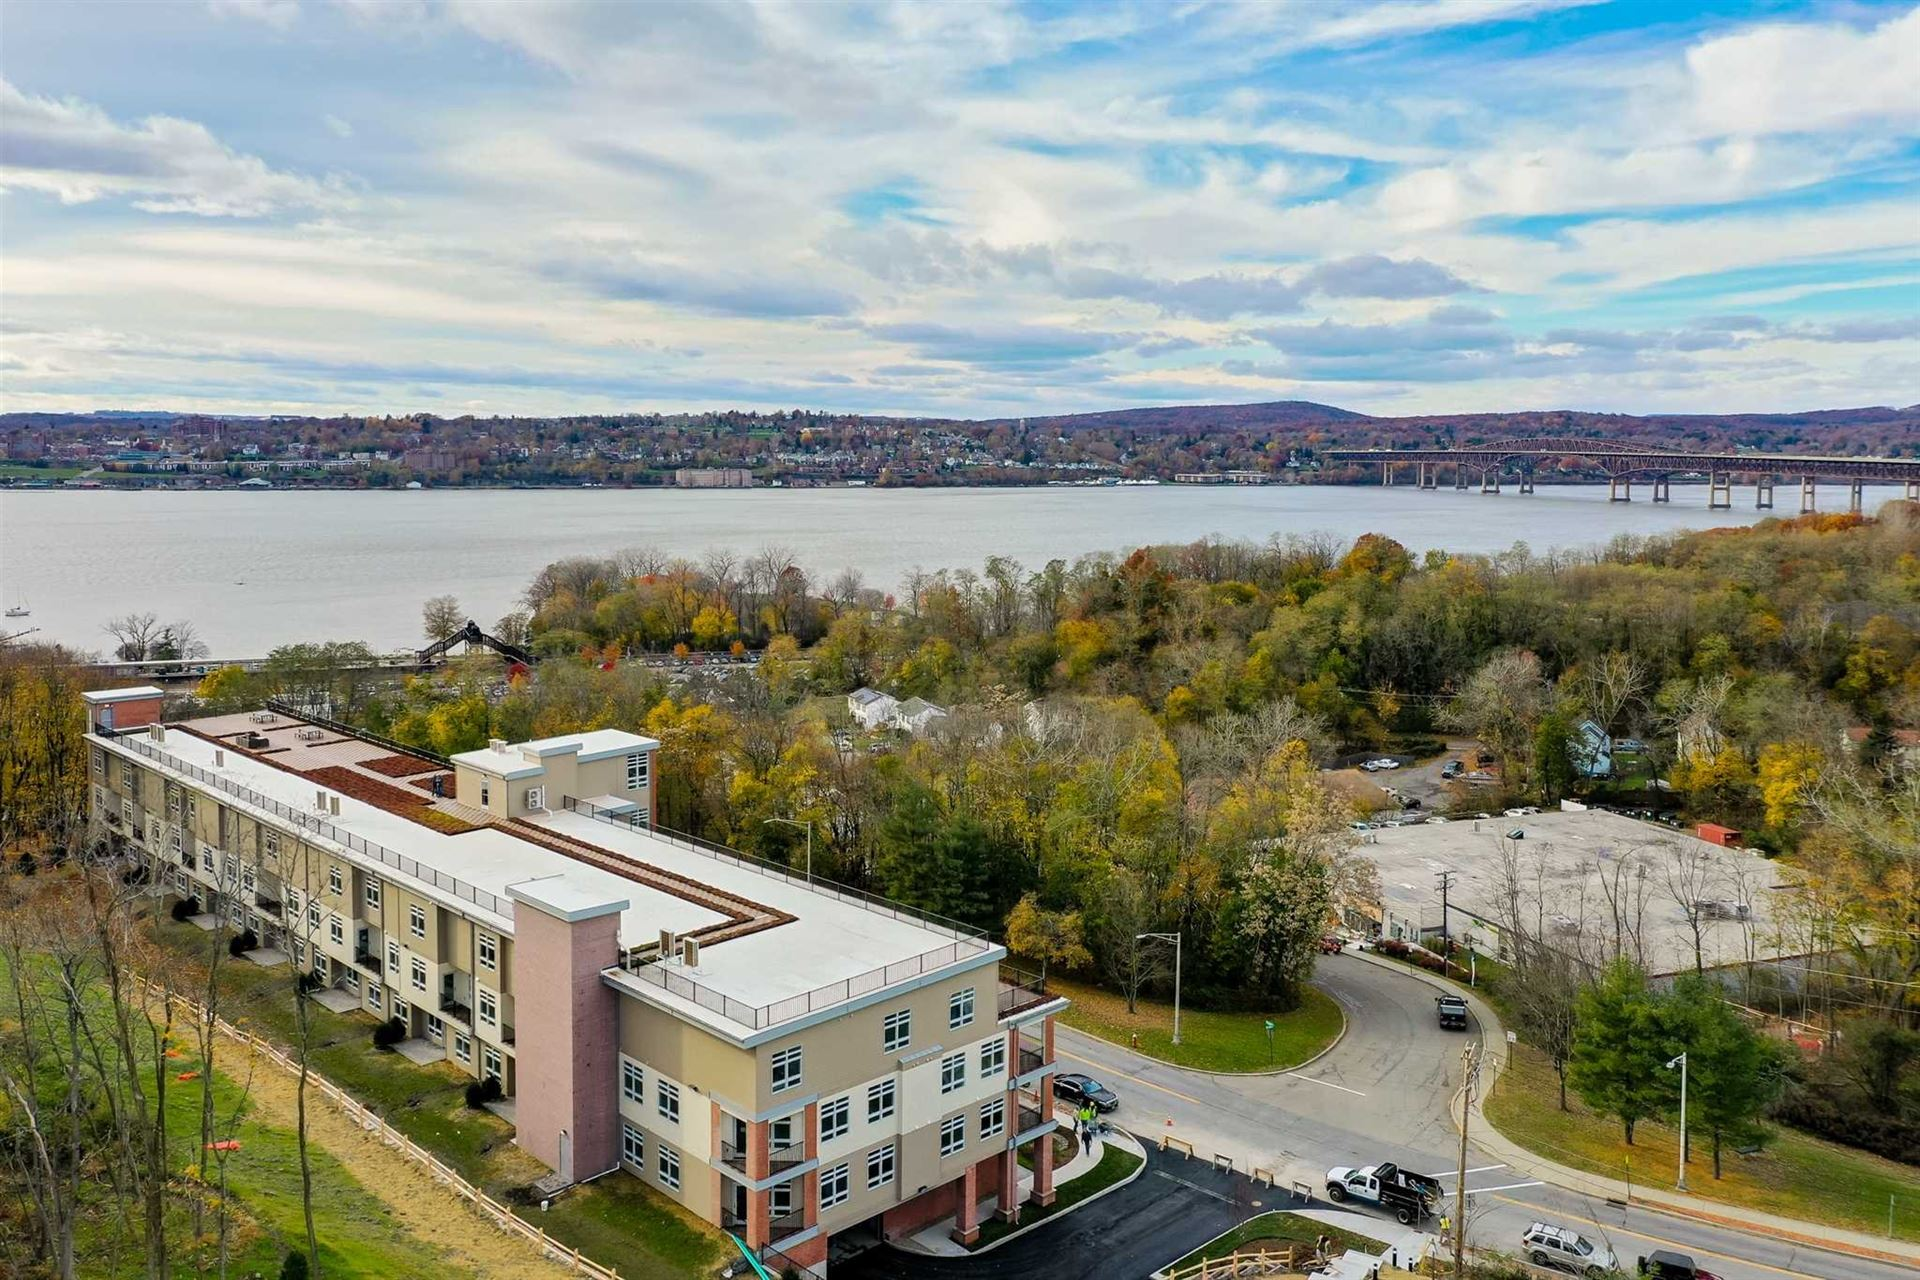 30 BEEKMAN PH6, Beacon, NY 12508 - #: 397385